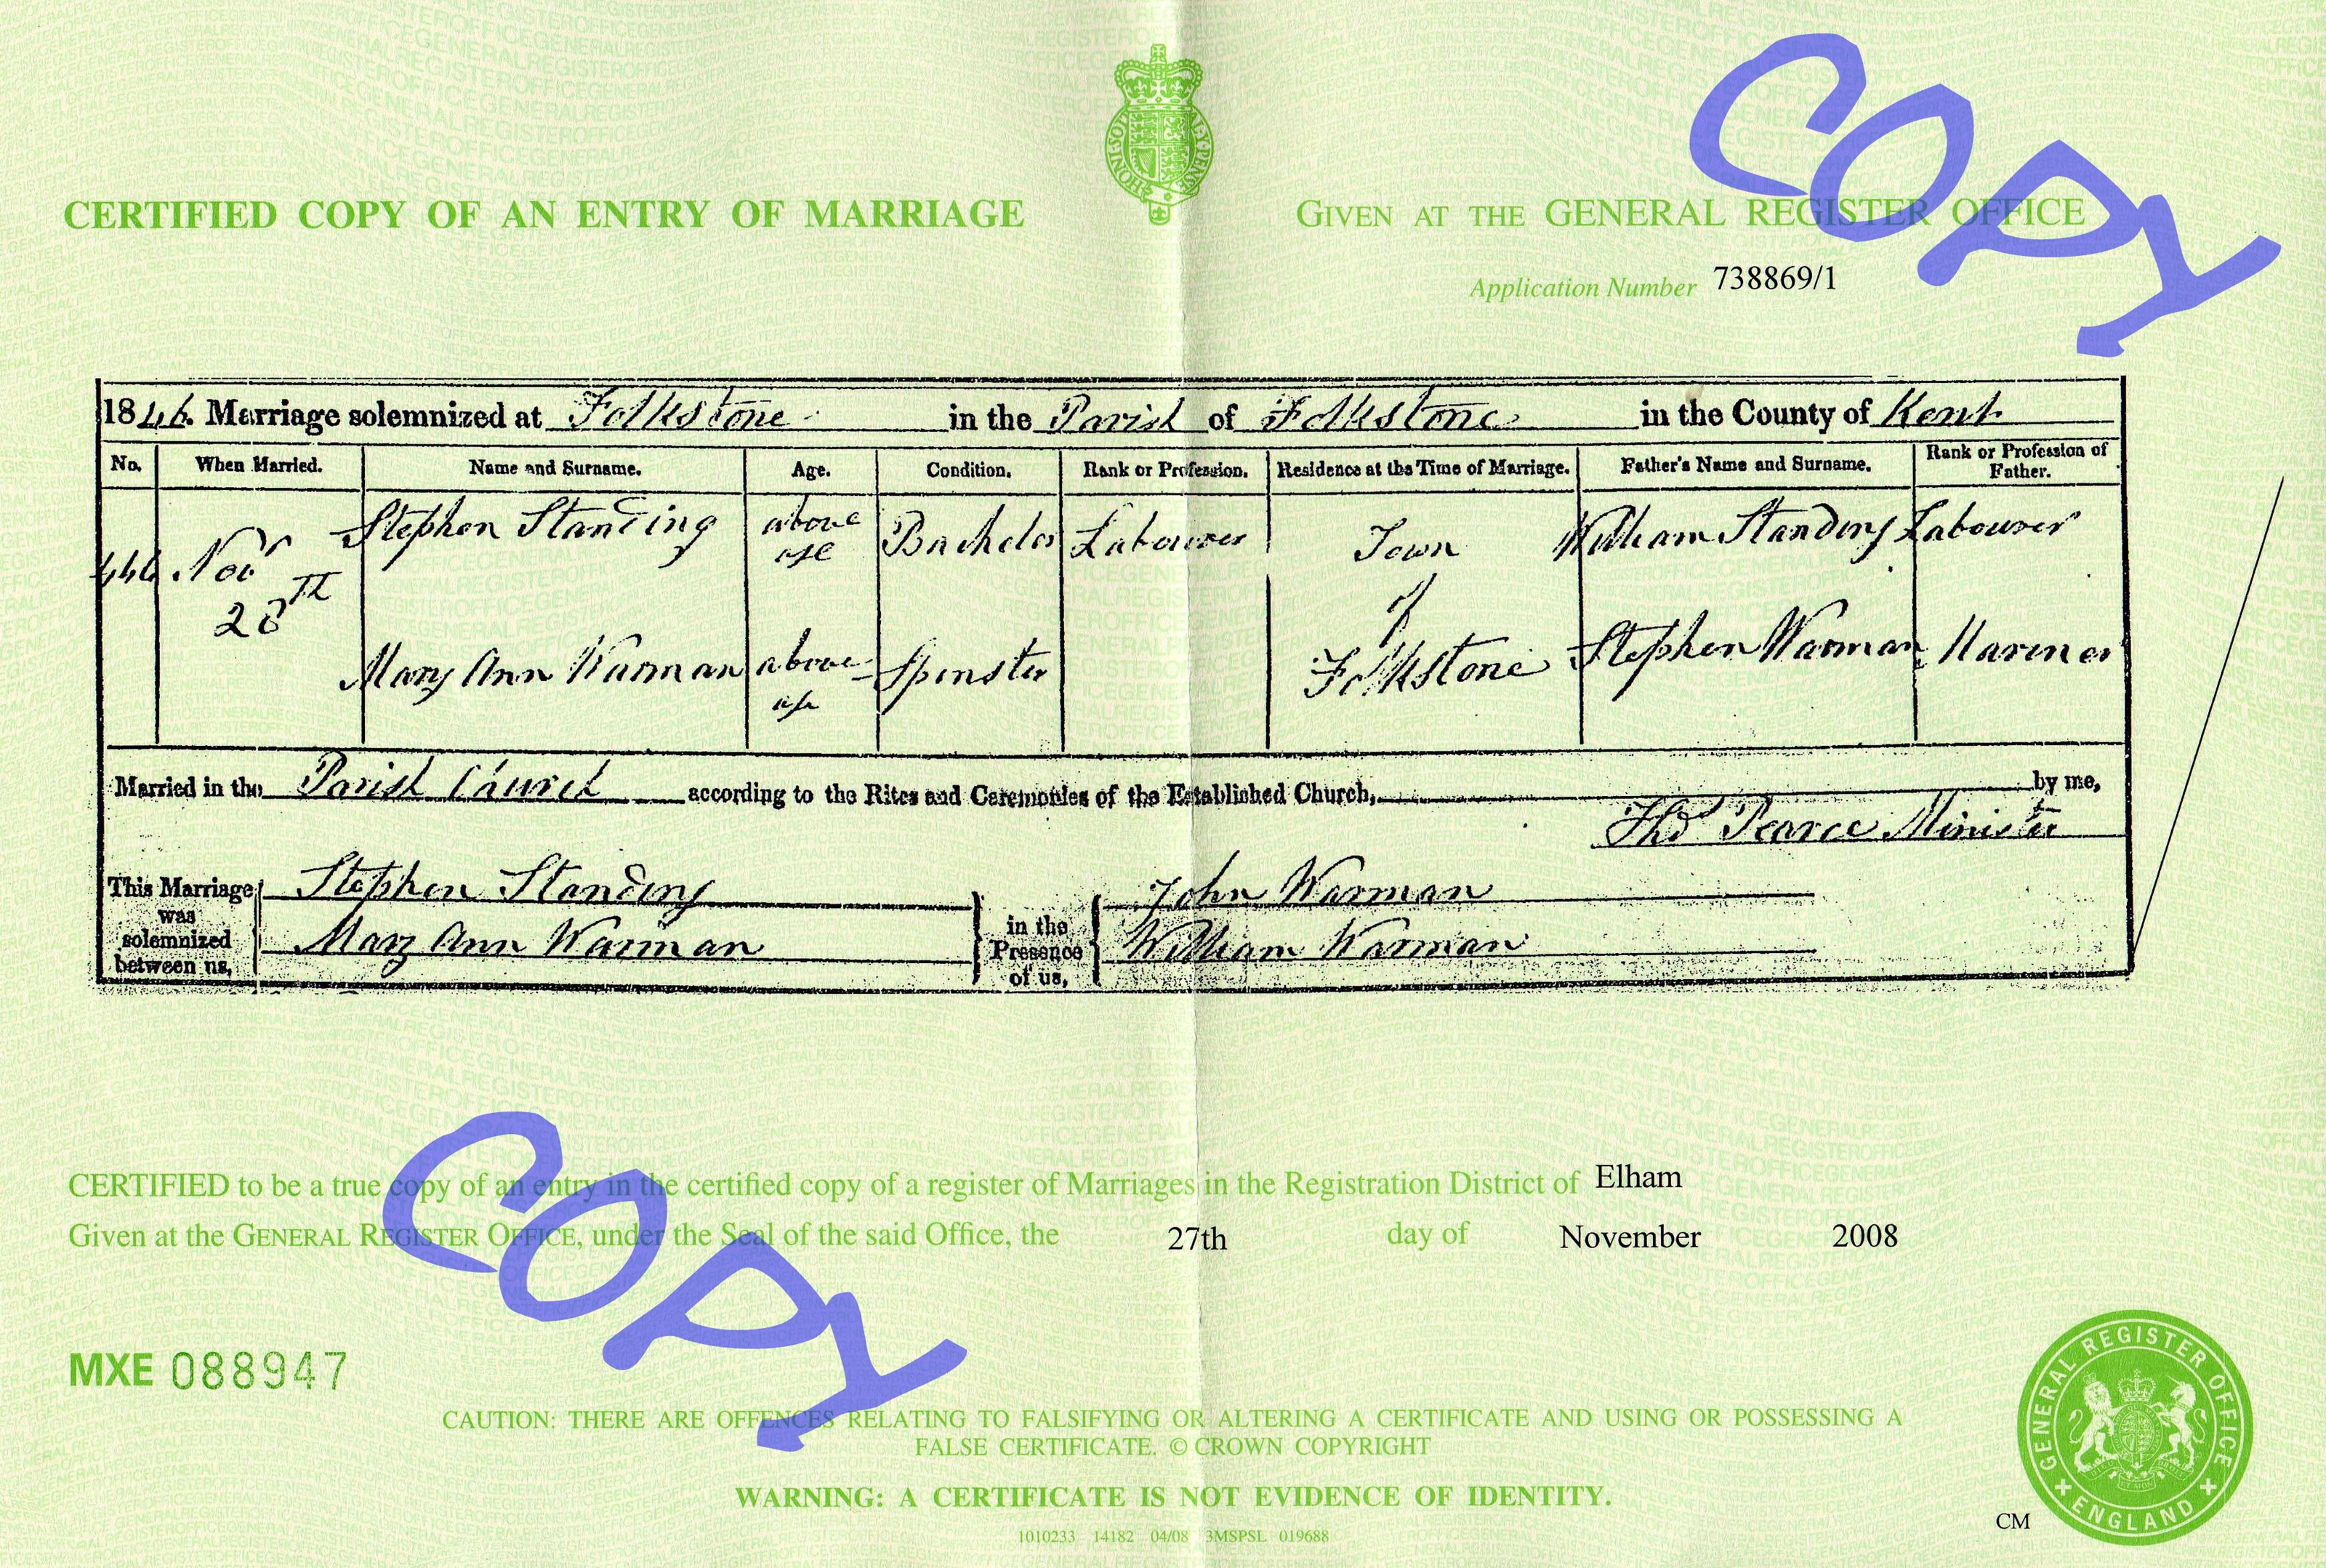 Stephen Standing - Mary Warman - marriage certificate